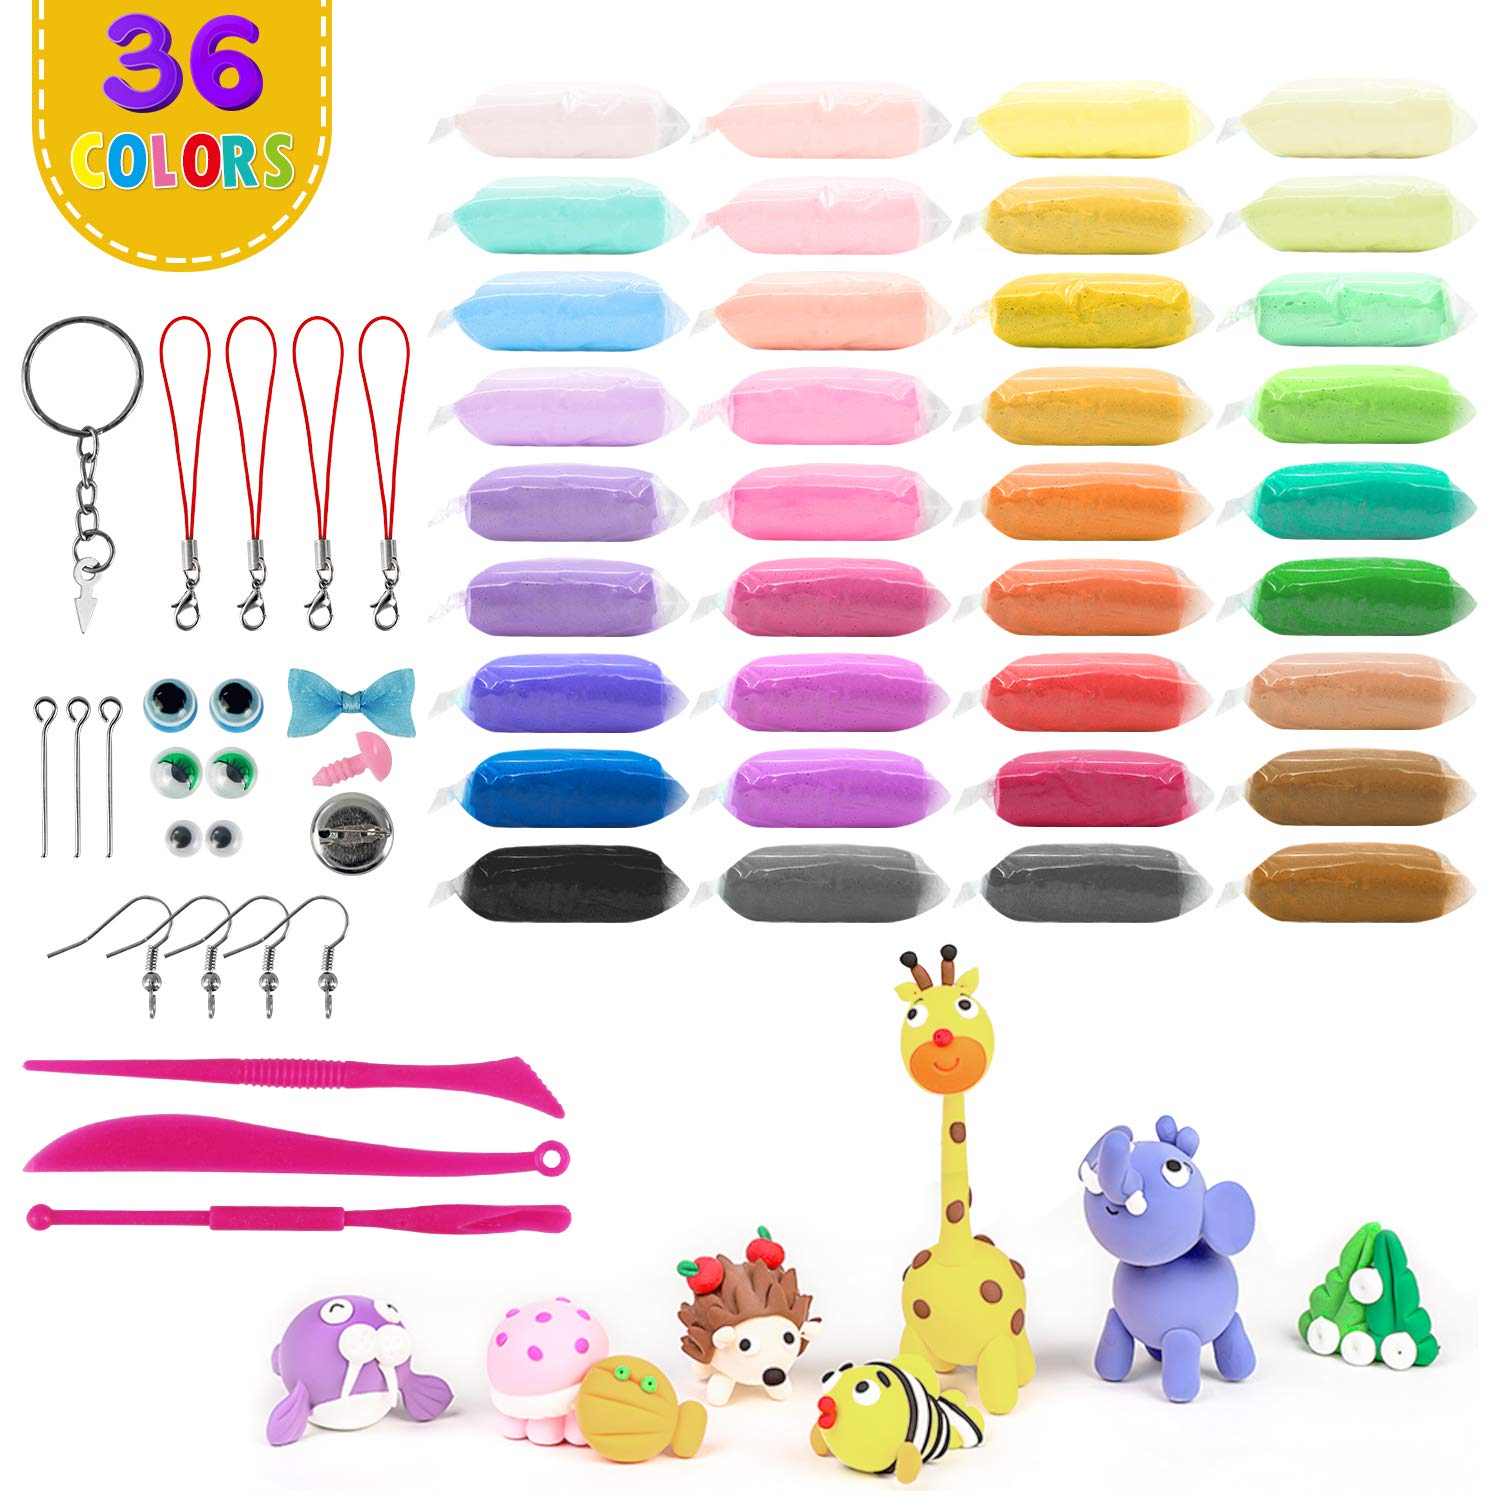 Includes Clay Dough Tools Modeling Clay Kits for Kids Non-Toxic Kids Clay Set Crafts for Kids Ideal Gift for Kids Tunnkit Modeling Clay Kit Air Dry Super Light Molding Magic Clay 36-Pack